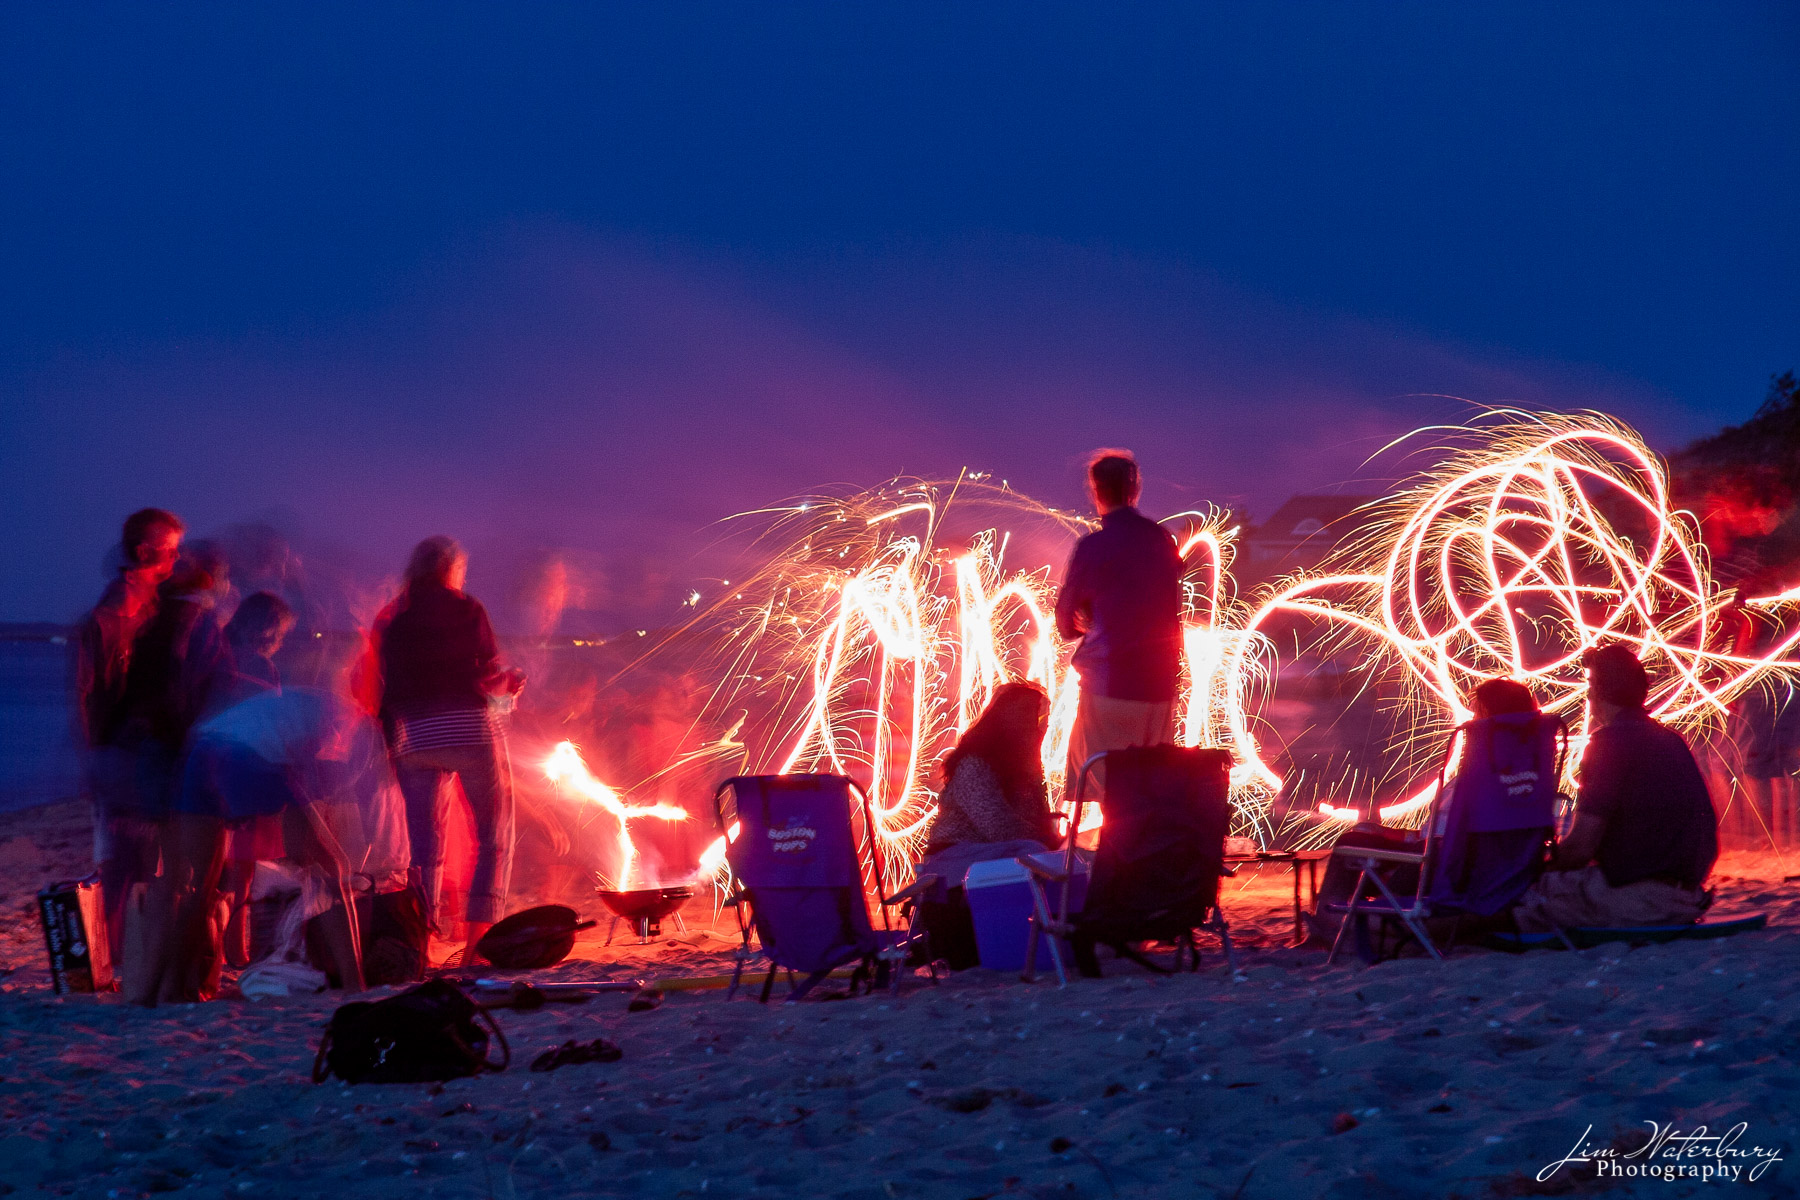 At a family picnic on a beach on the north shore of Nantucket , children draw circles of light in the night with sparklers.